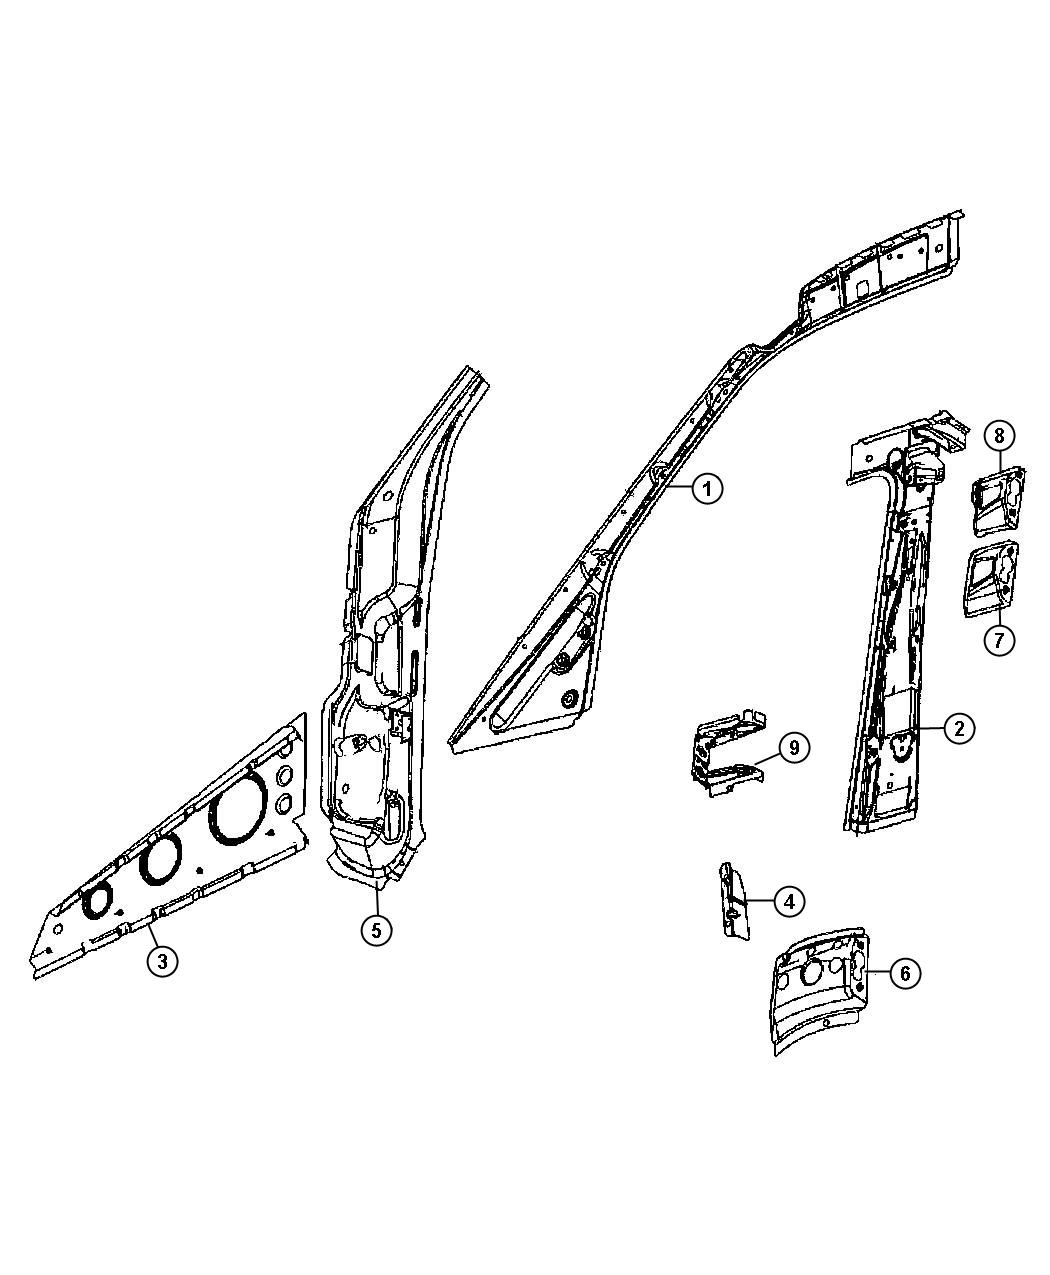 2008 Sprinter Sliding Door Parts Wiring Diagram And Engine Dodge Window Html In Addition Index Cfm Besides Showassembly Further 68008664aa Likewise 2005 Ford